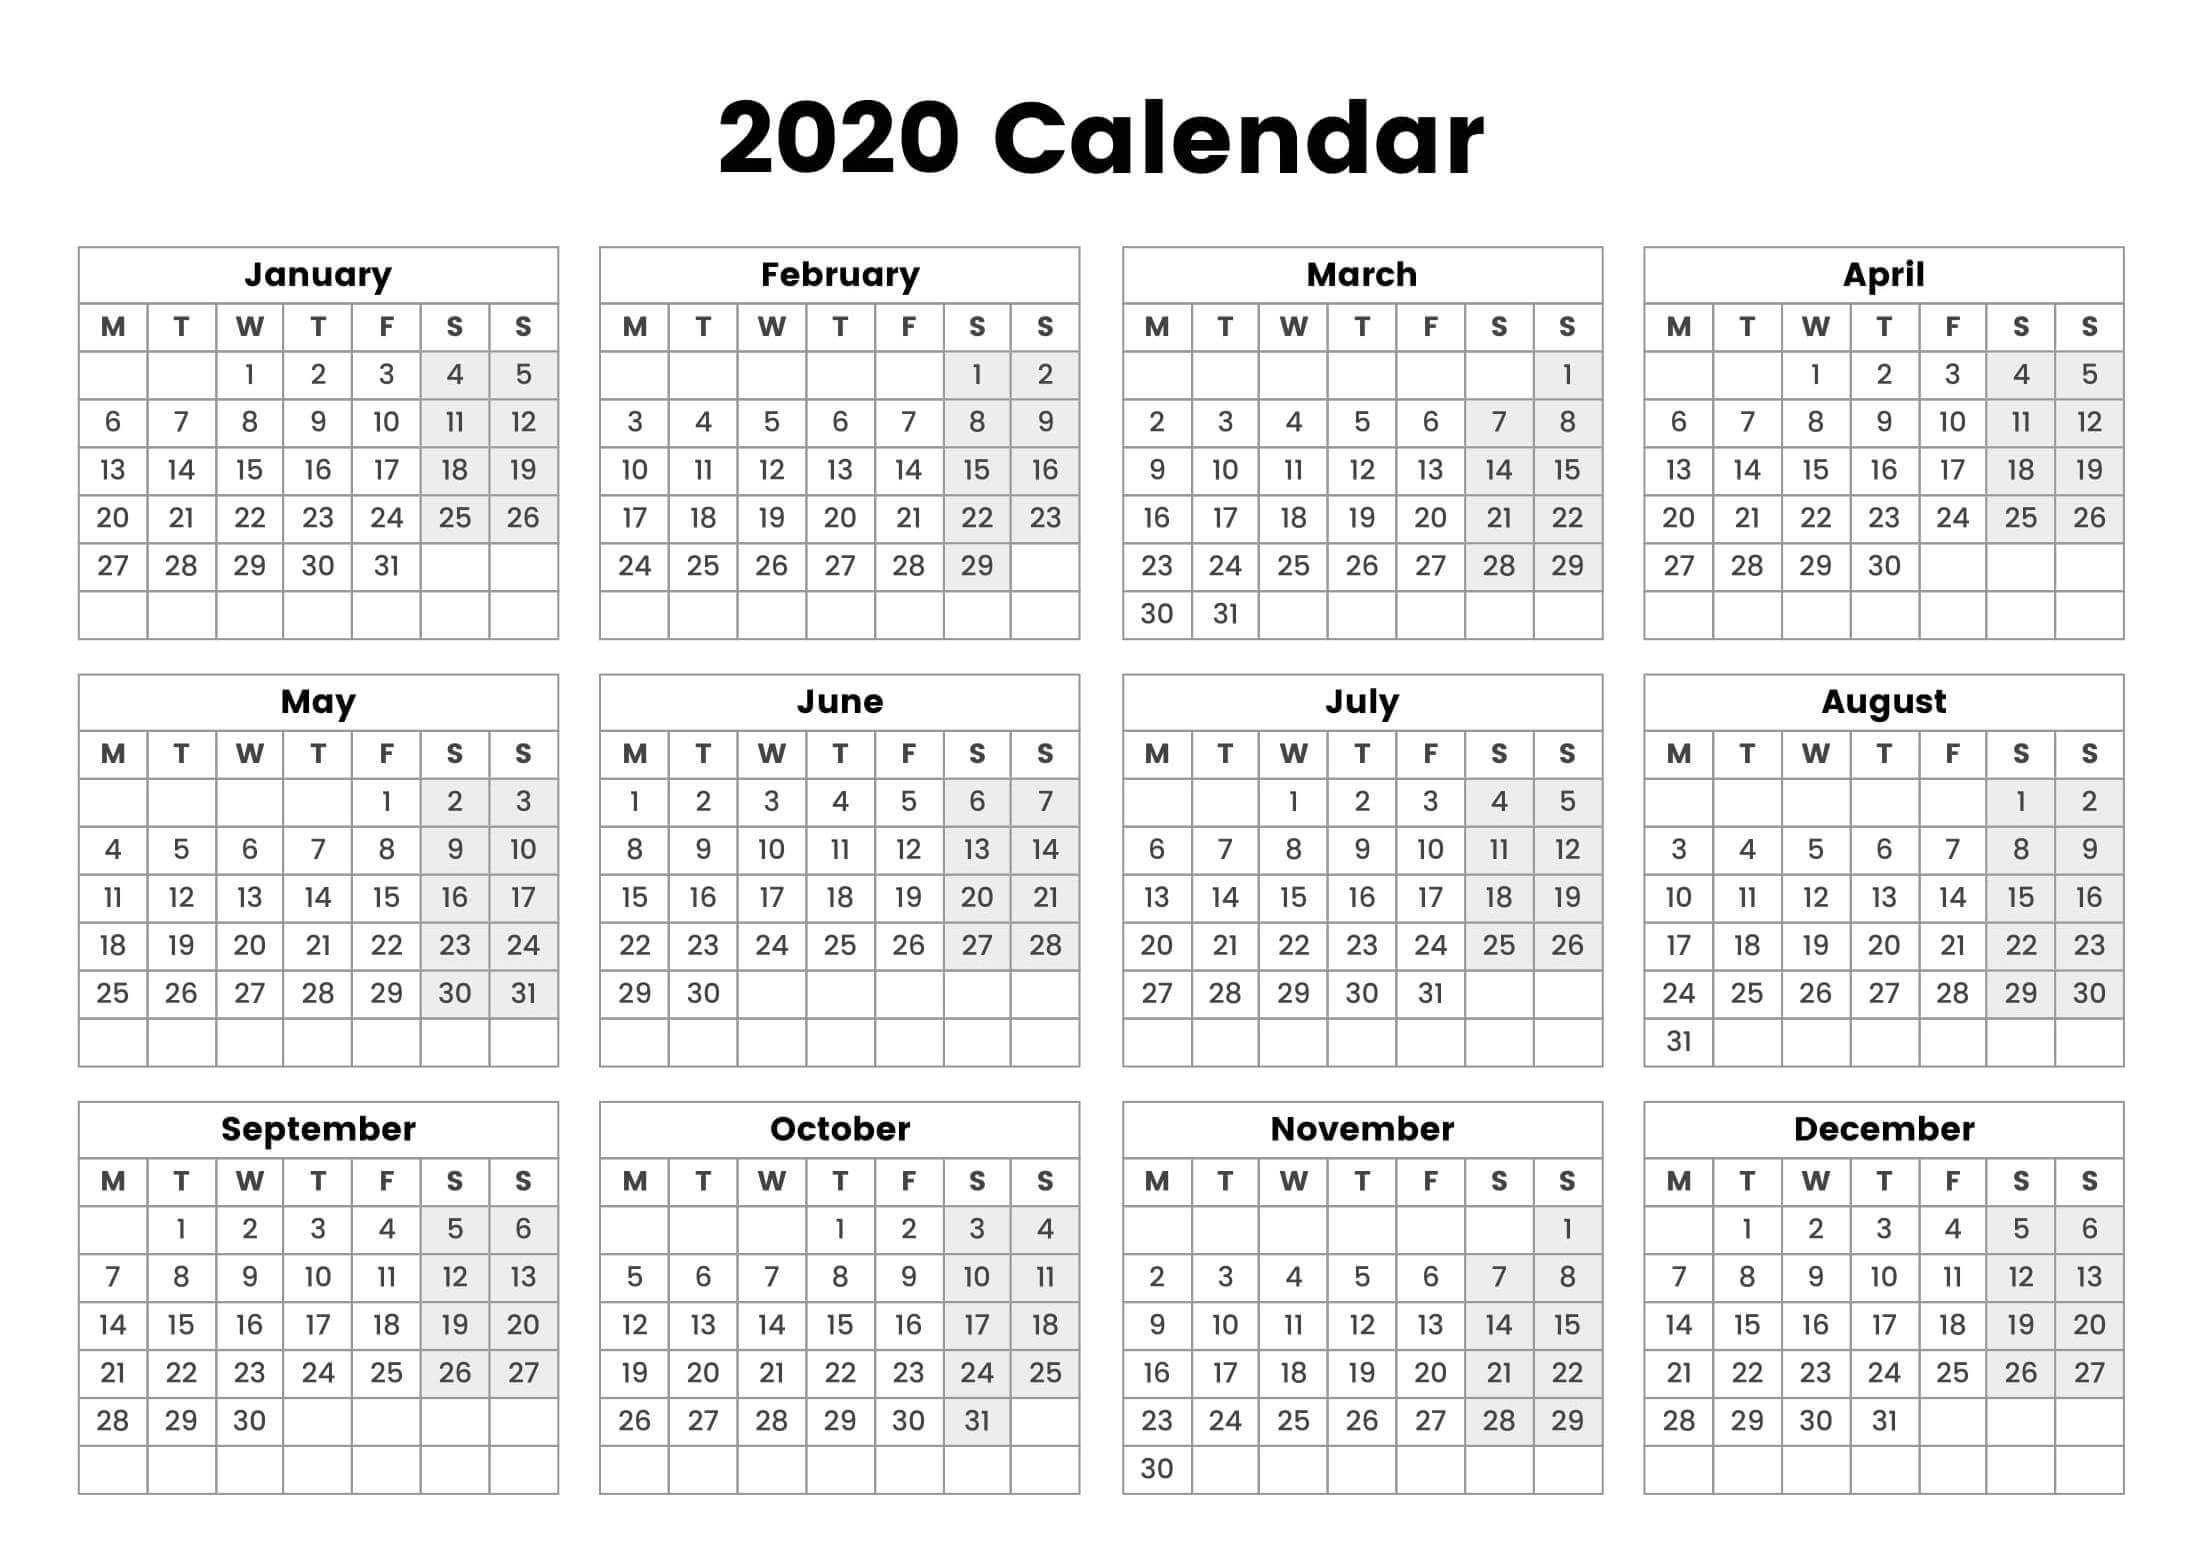 One Page Yearly Calendar 2020 Printable Cute - 2019 Calendar Template Year At A Glance